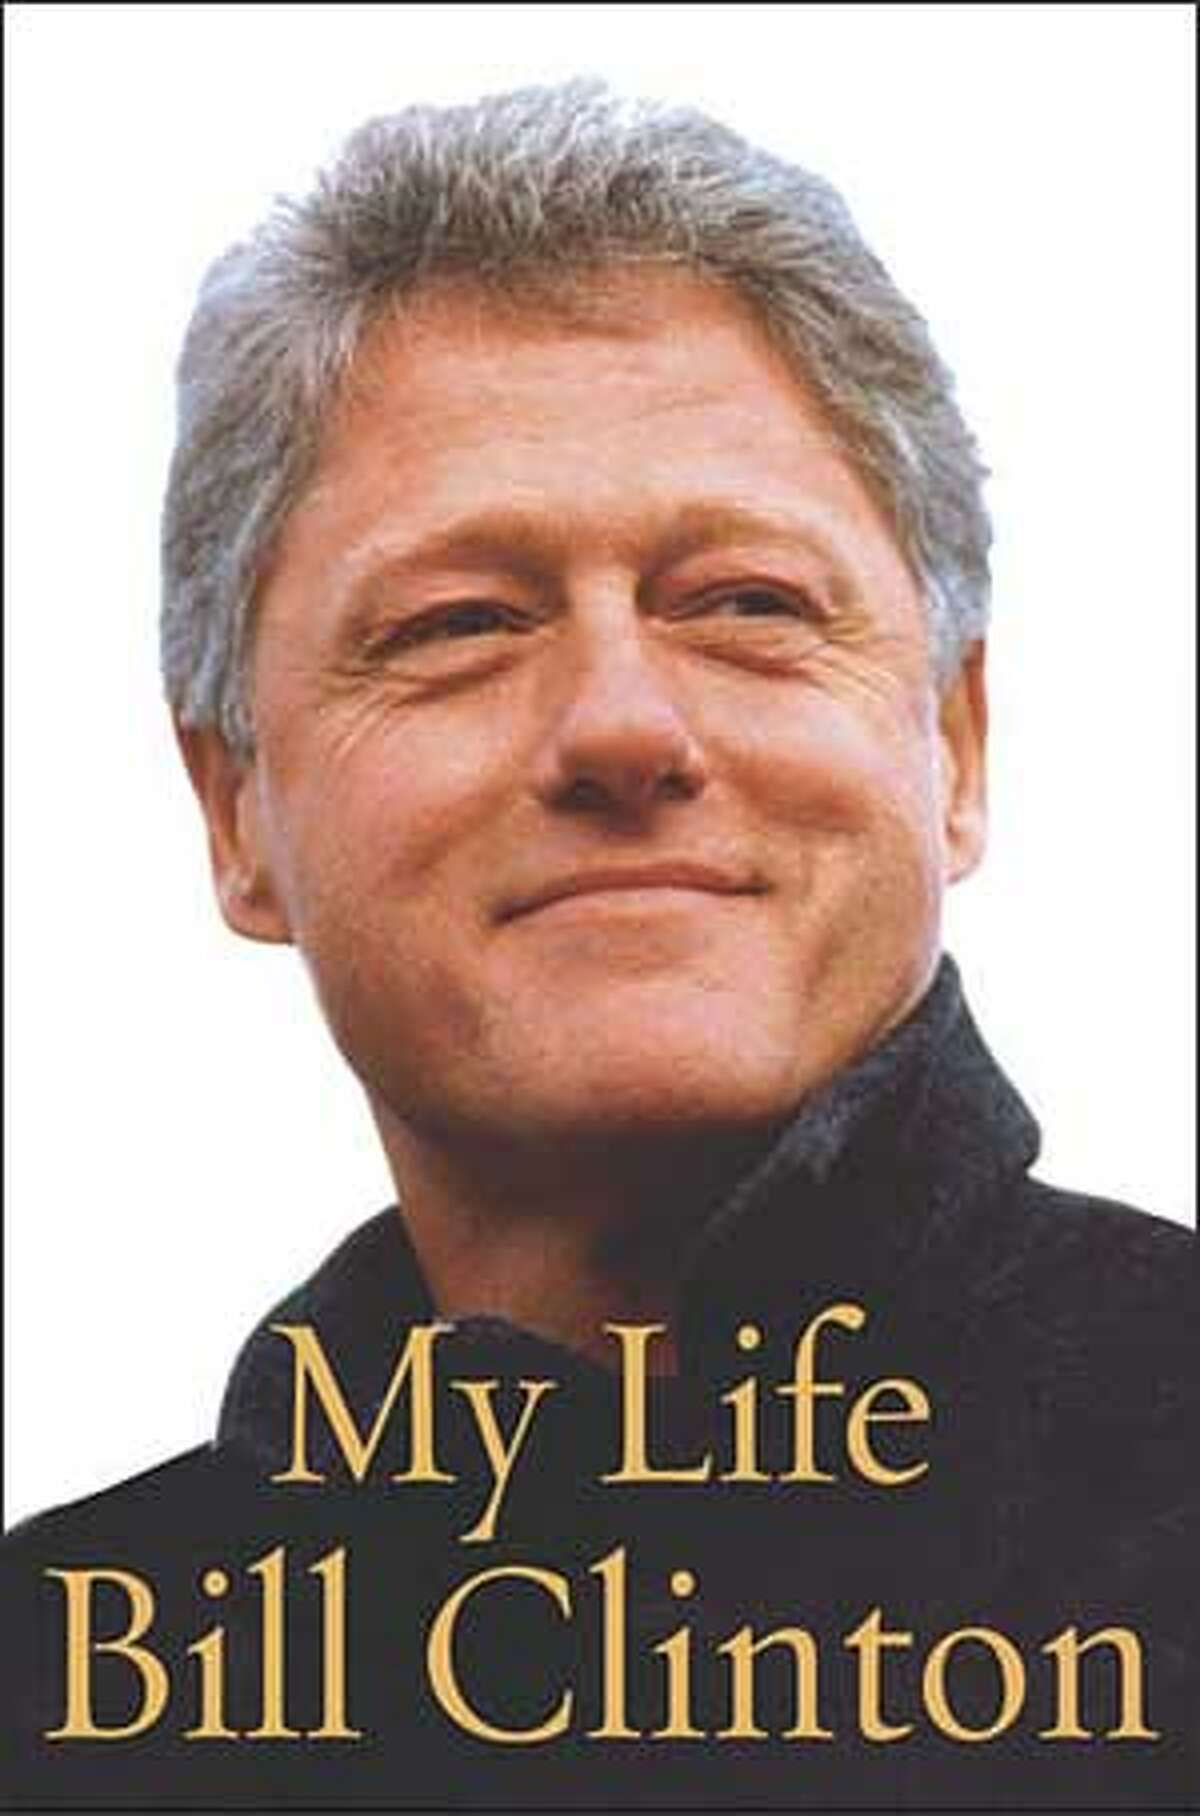 The cover of former President Bill Clinton's book